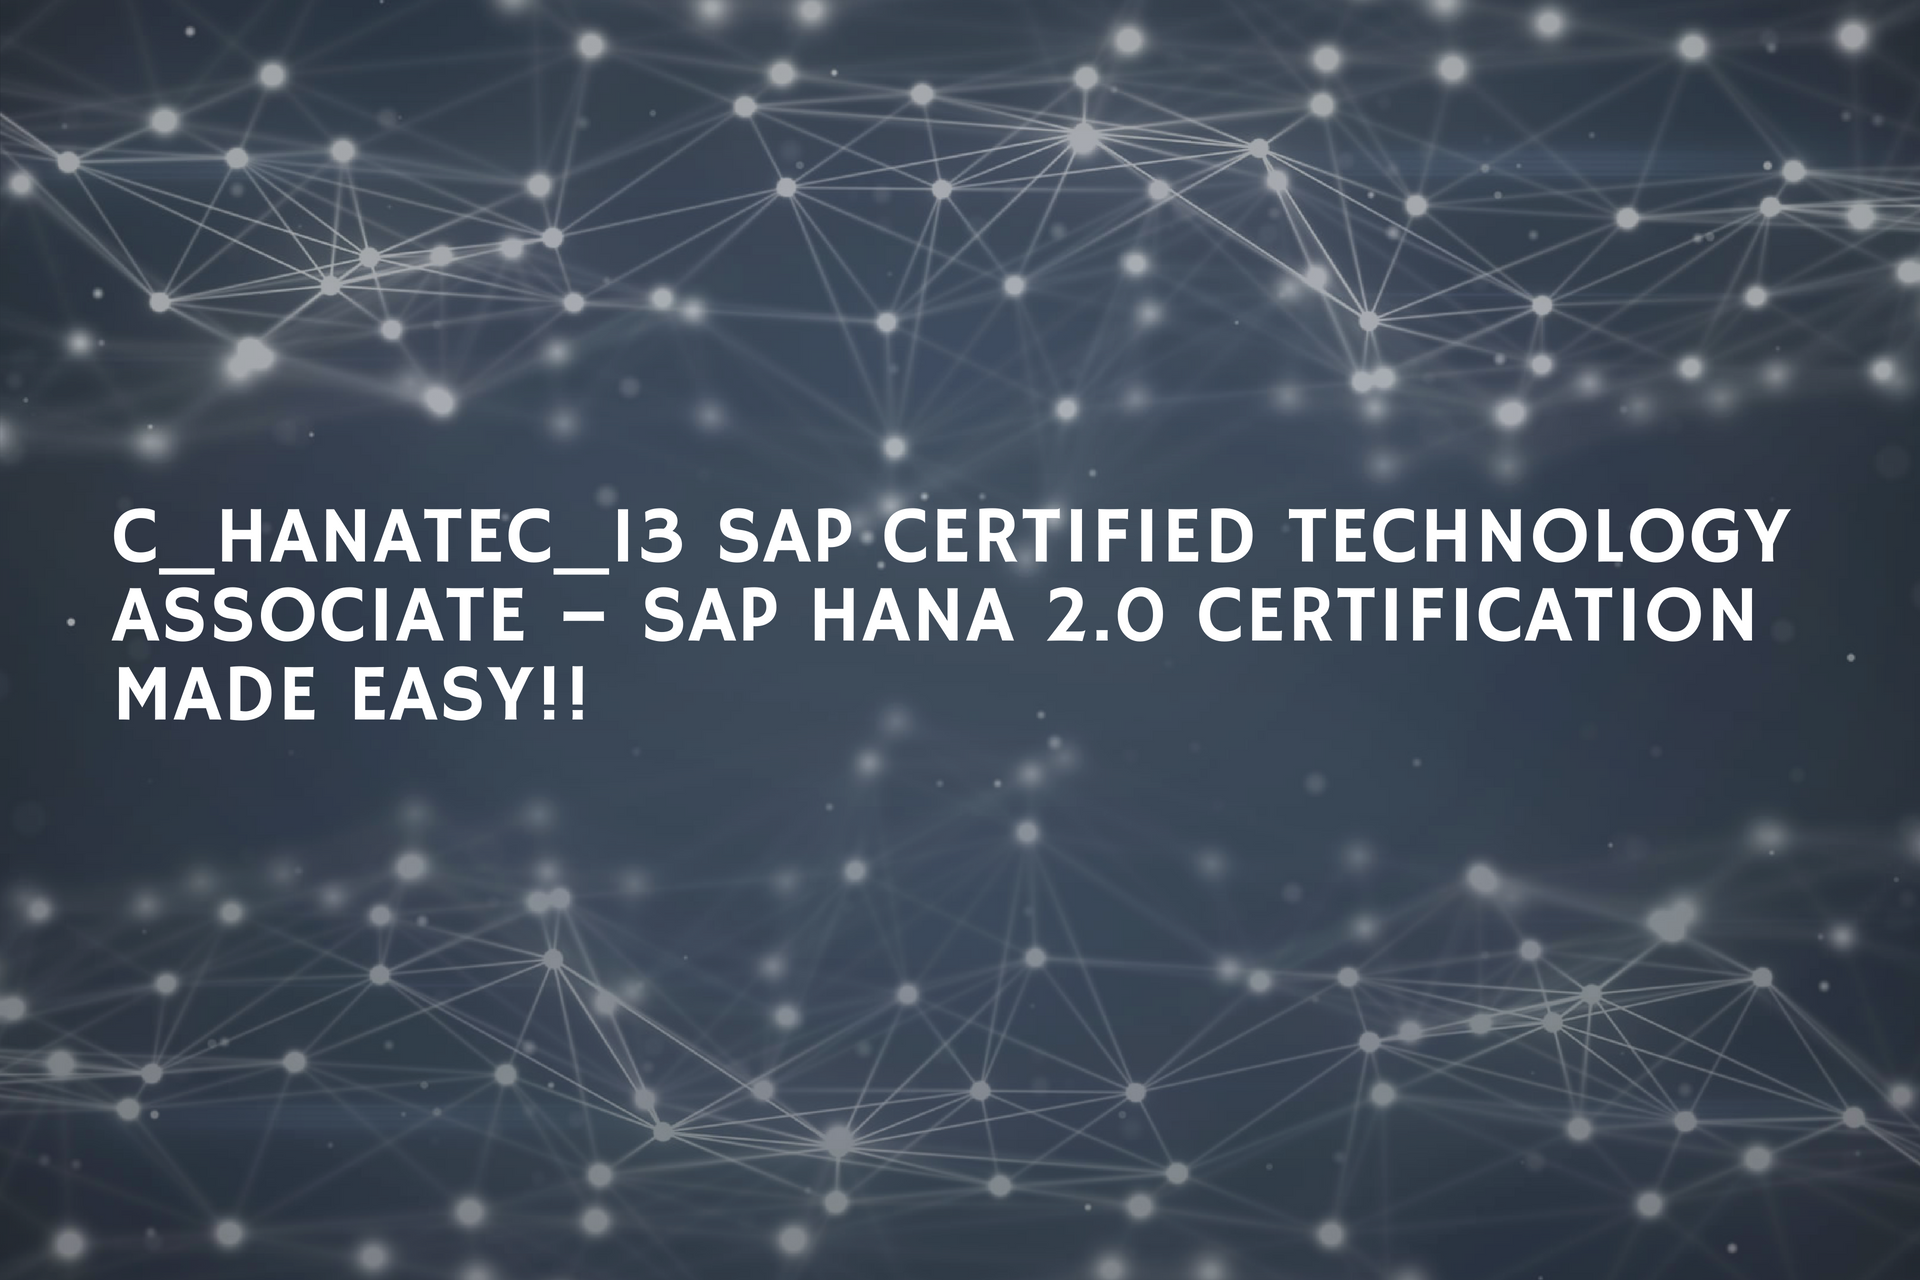 C_HANATEC_13 SAP Certified Technology Associate – SAP HANA